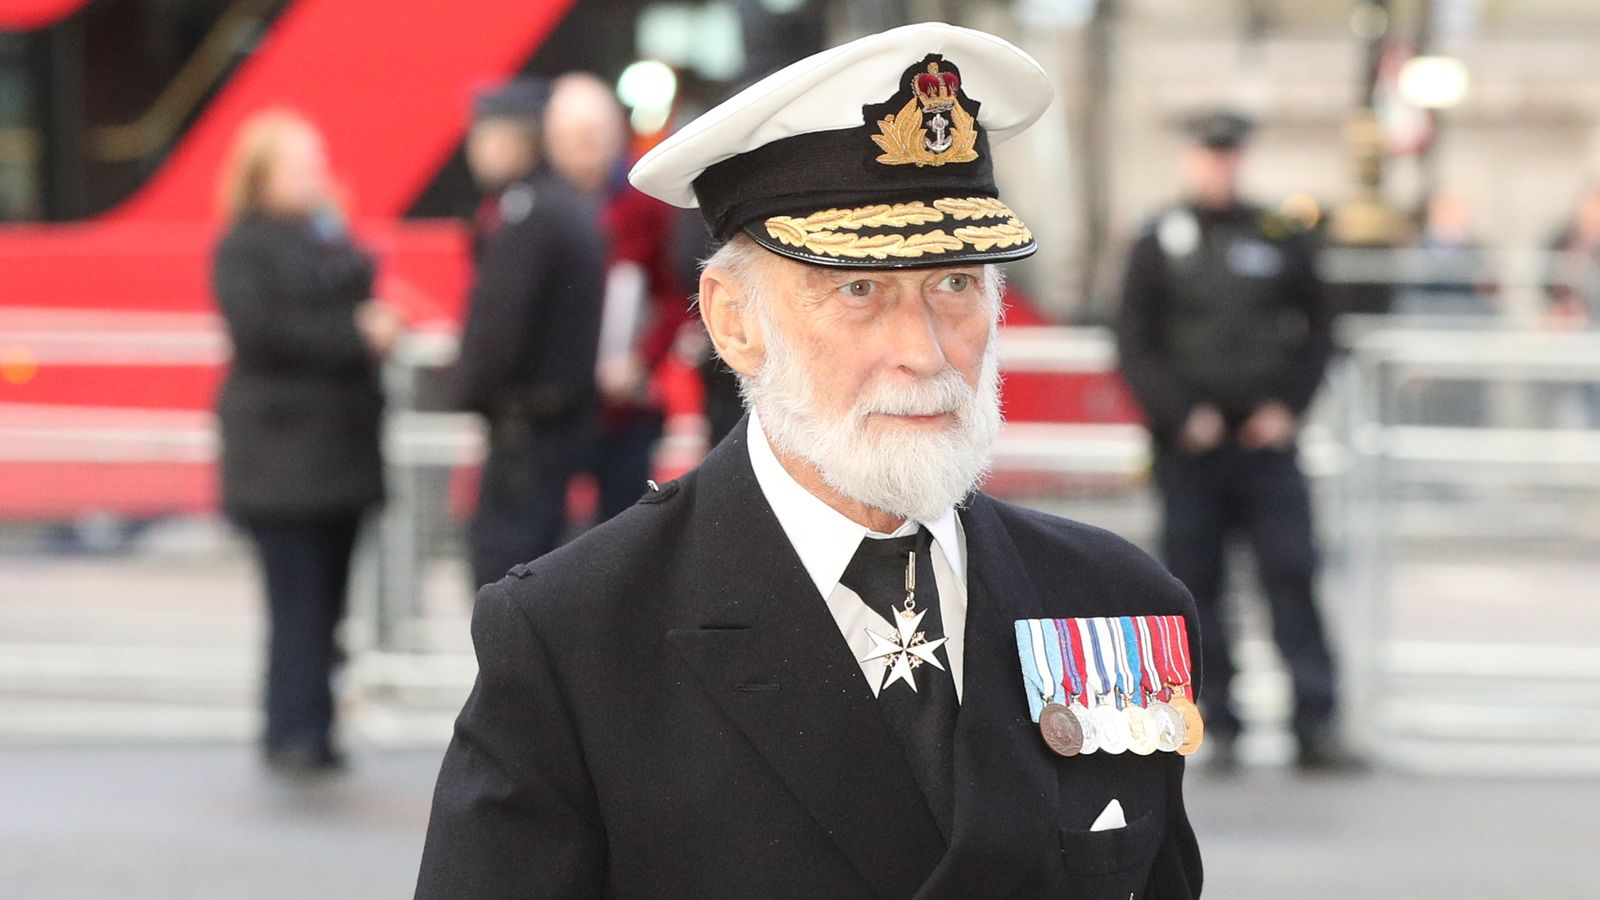 Prince Michael of Kent accused of selling access to Vladimir Putin